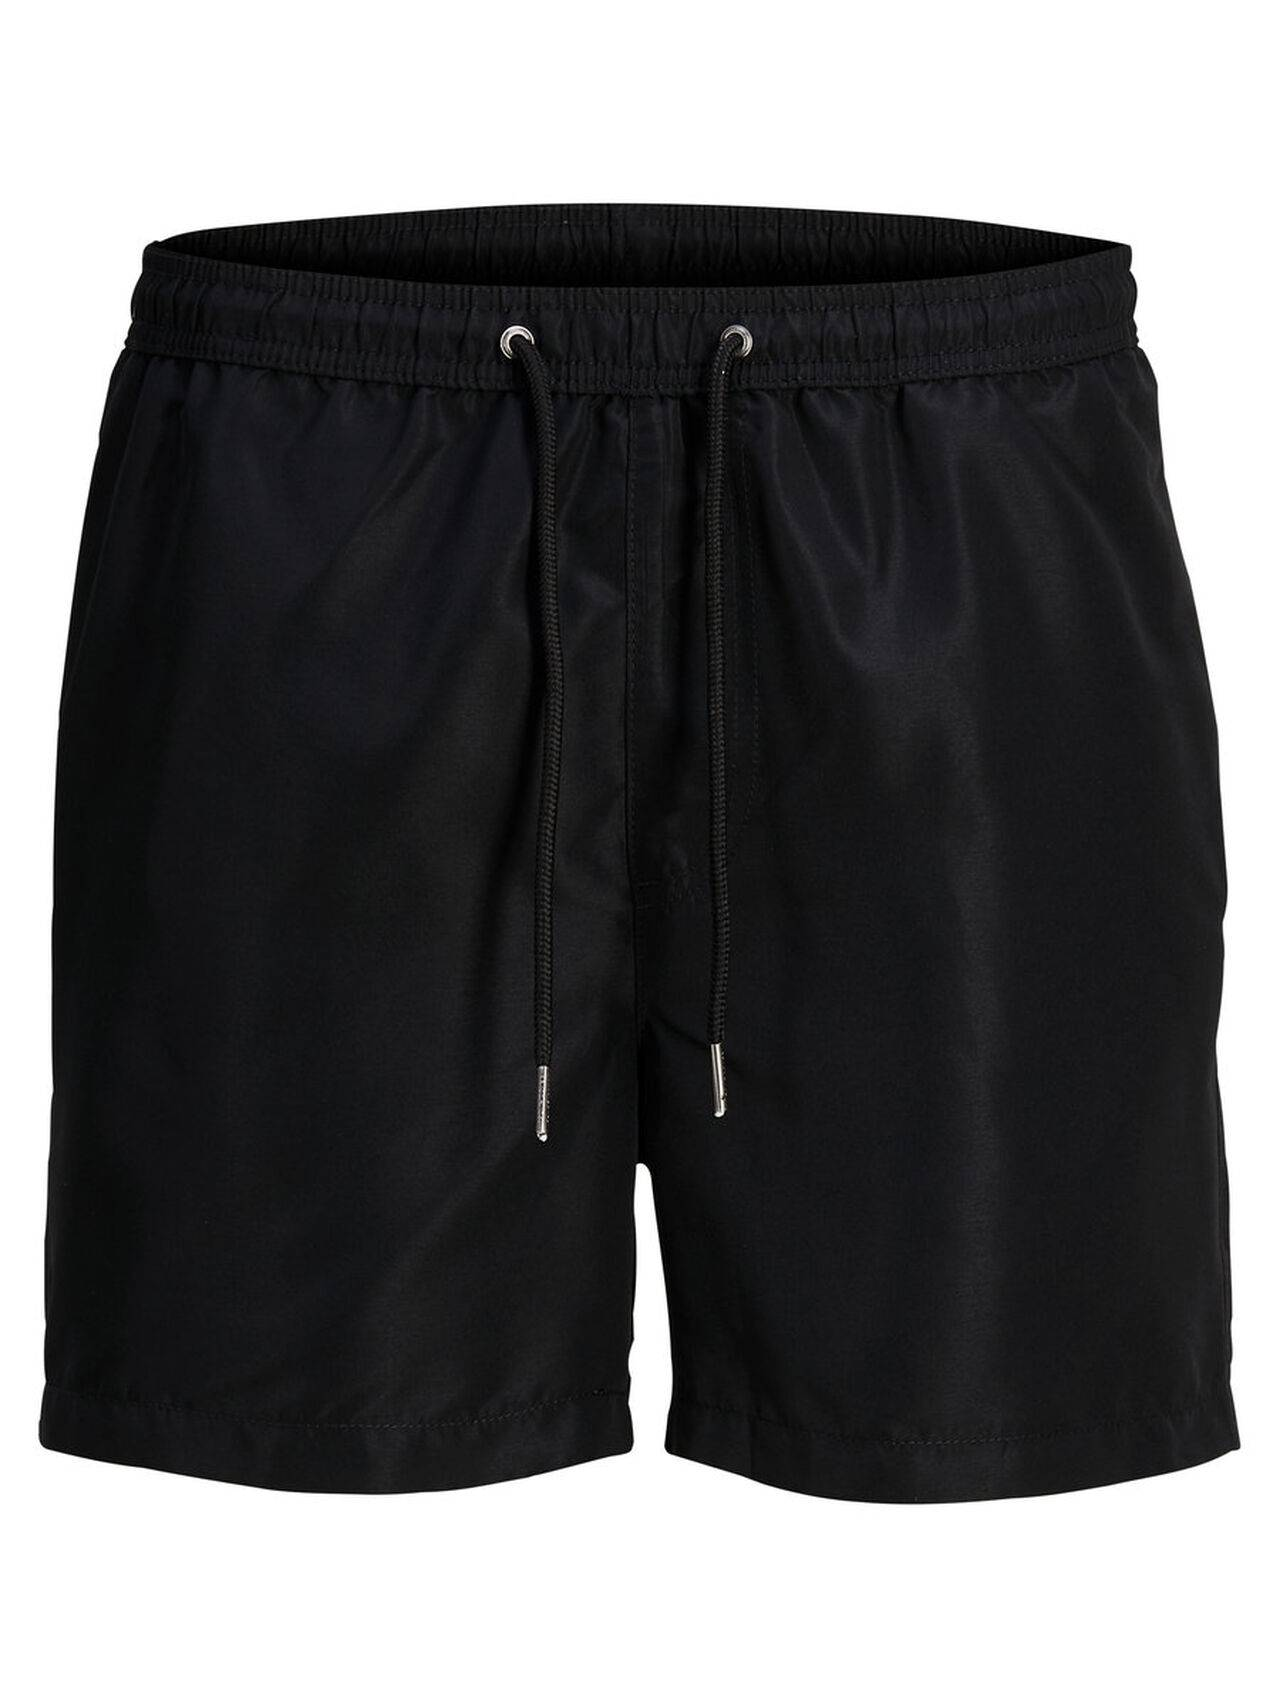 JACK & JONES Sunset Ww Sts Swimshorts Men Black Black